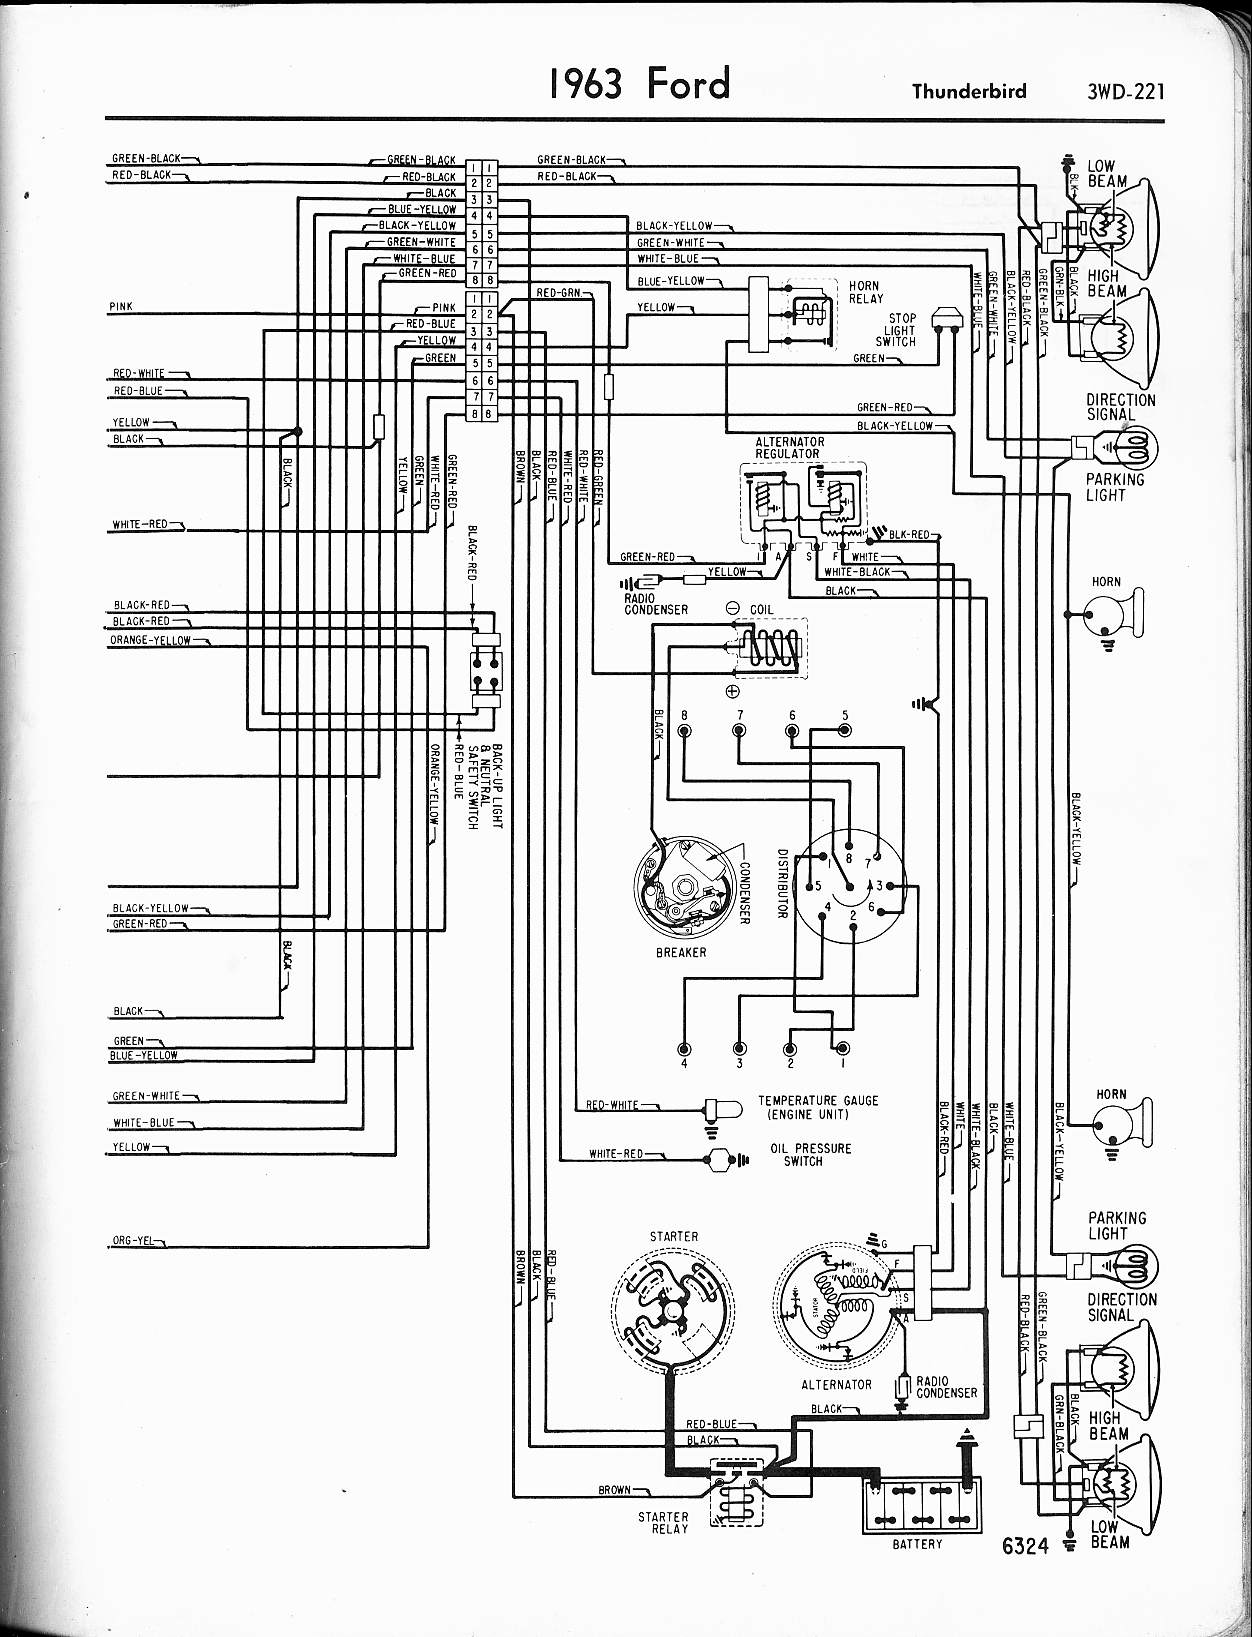 57 Chevy Ignition Switch Wiring Library Corvette Cigarette Lighter W Housing 19561957 1962 Ford Truck Diagram Online Schematics Rh Delvato Co 1957 Starter